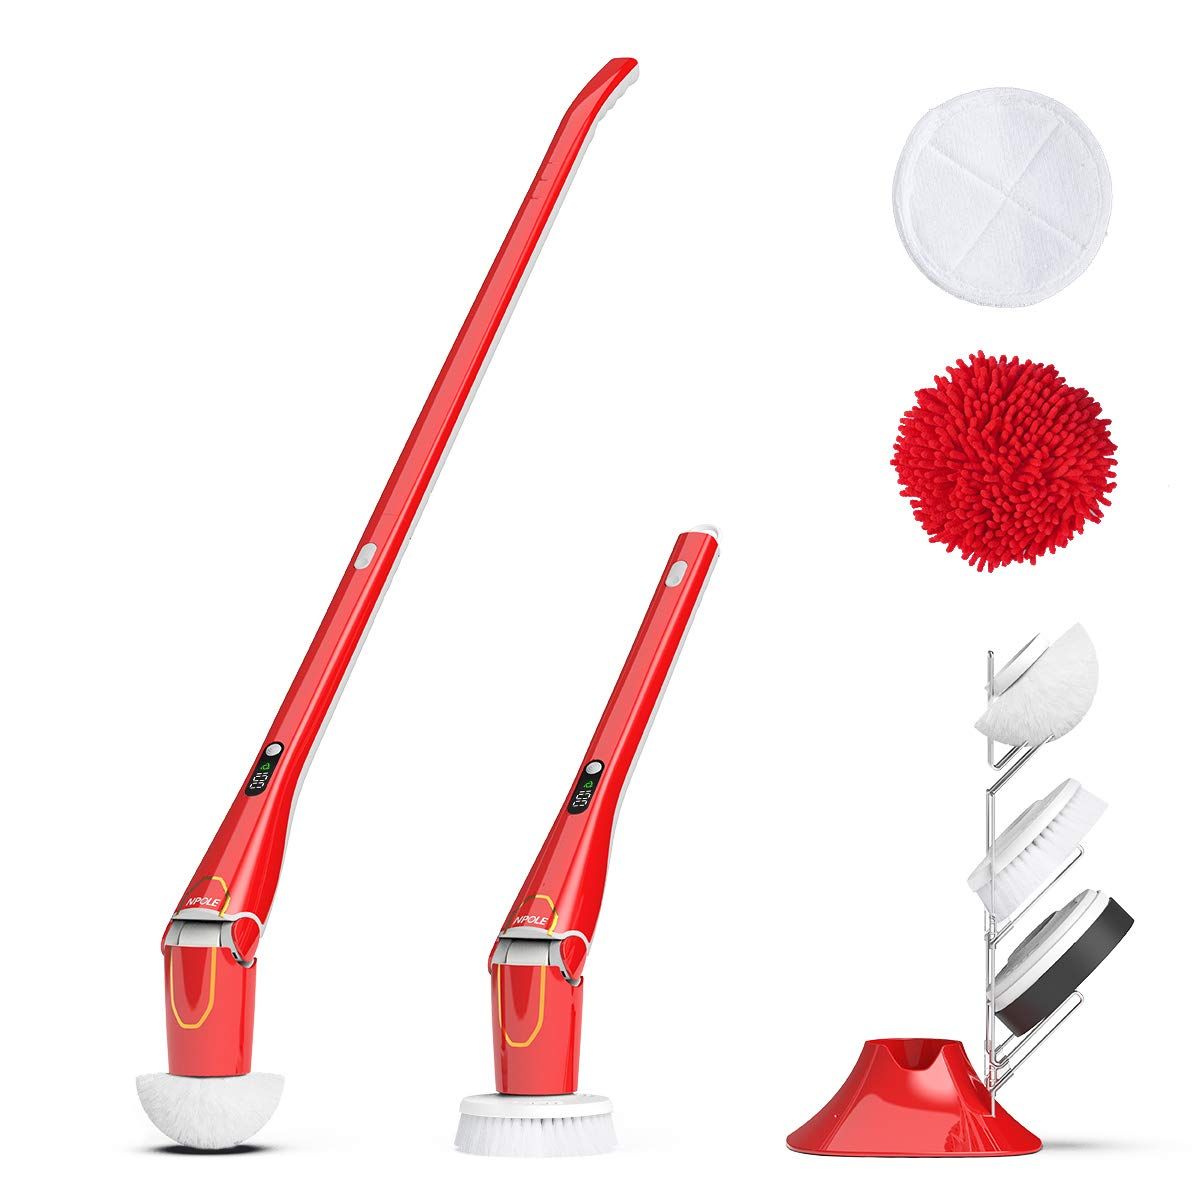 NPOLE Electric Spin Scrubber, LED Power Display Bathroom Cleaning Brush With5 Cleaning Scrubber Heads 1 Extension Arm and Storage Bracket Be Suitable Car,Tile,Carpet, Wall, Red